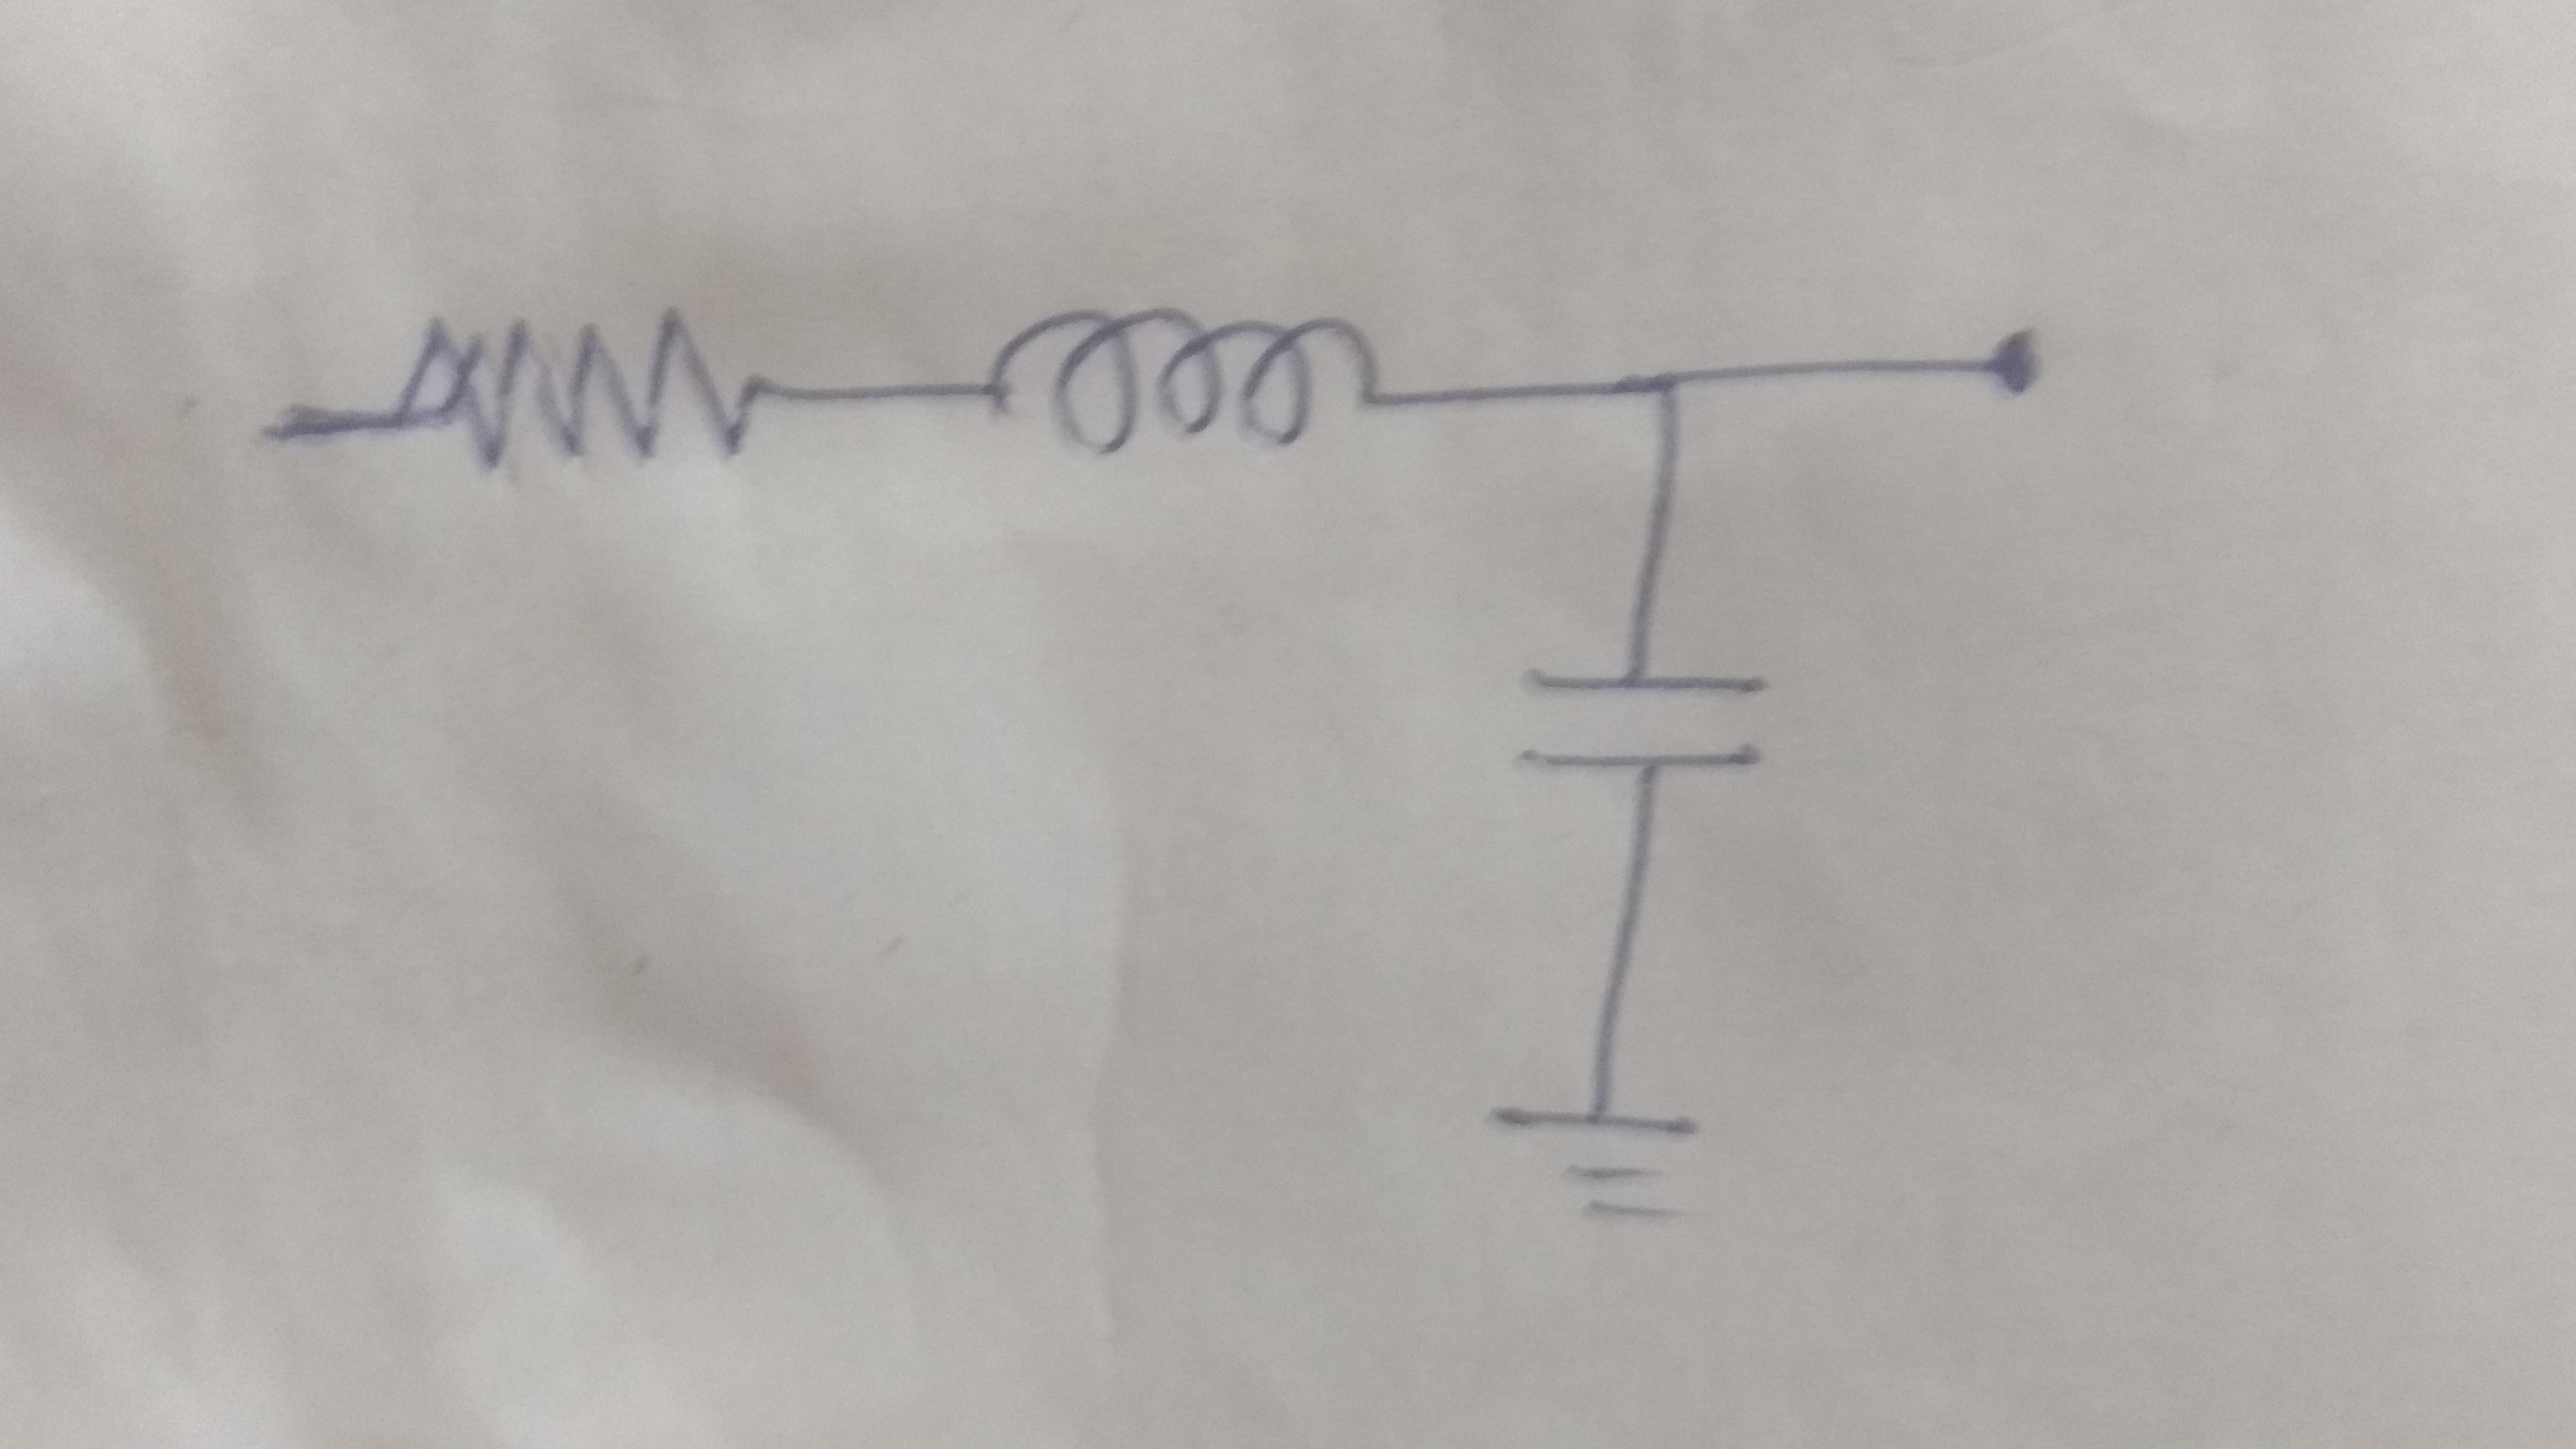 According to the formula for bandwidth of an RLC circuit- BW